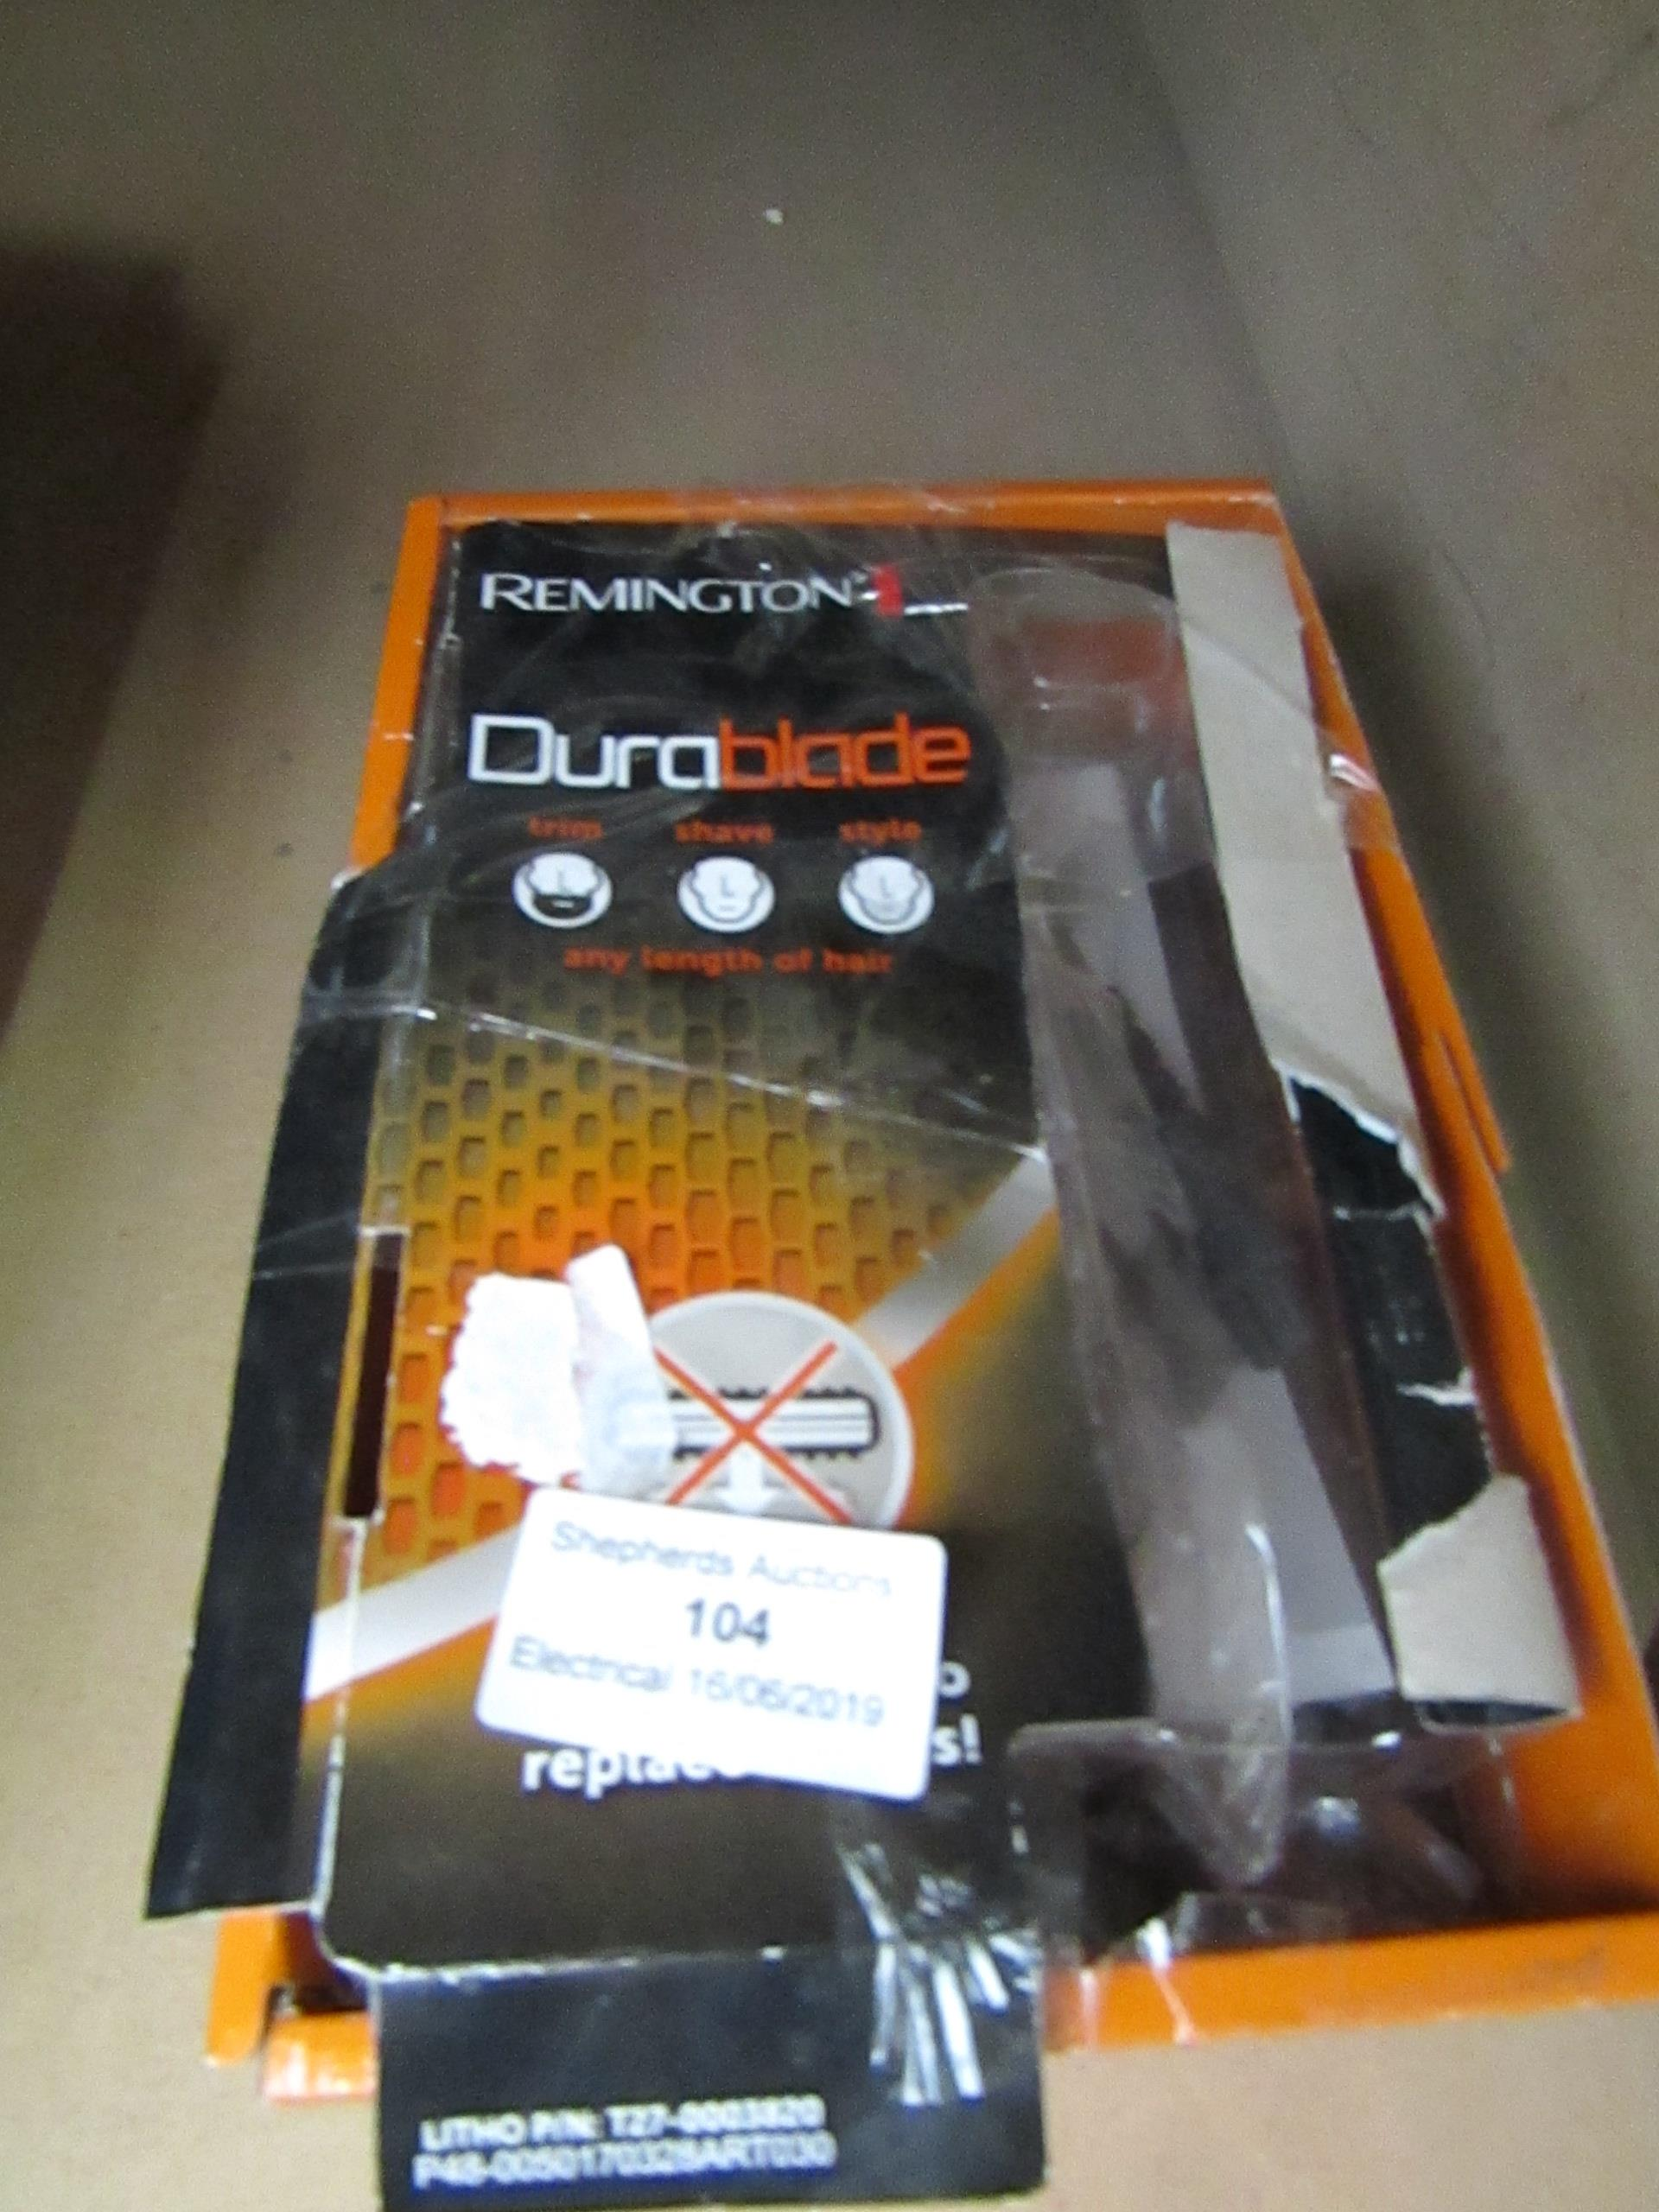 Lot 104 - Remington DuraBlade beard trimmer, untested and boxed.